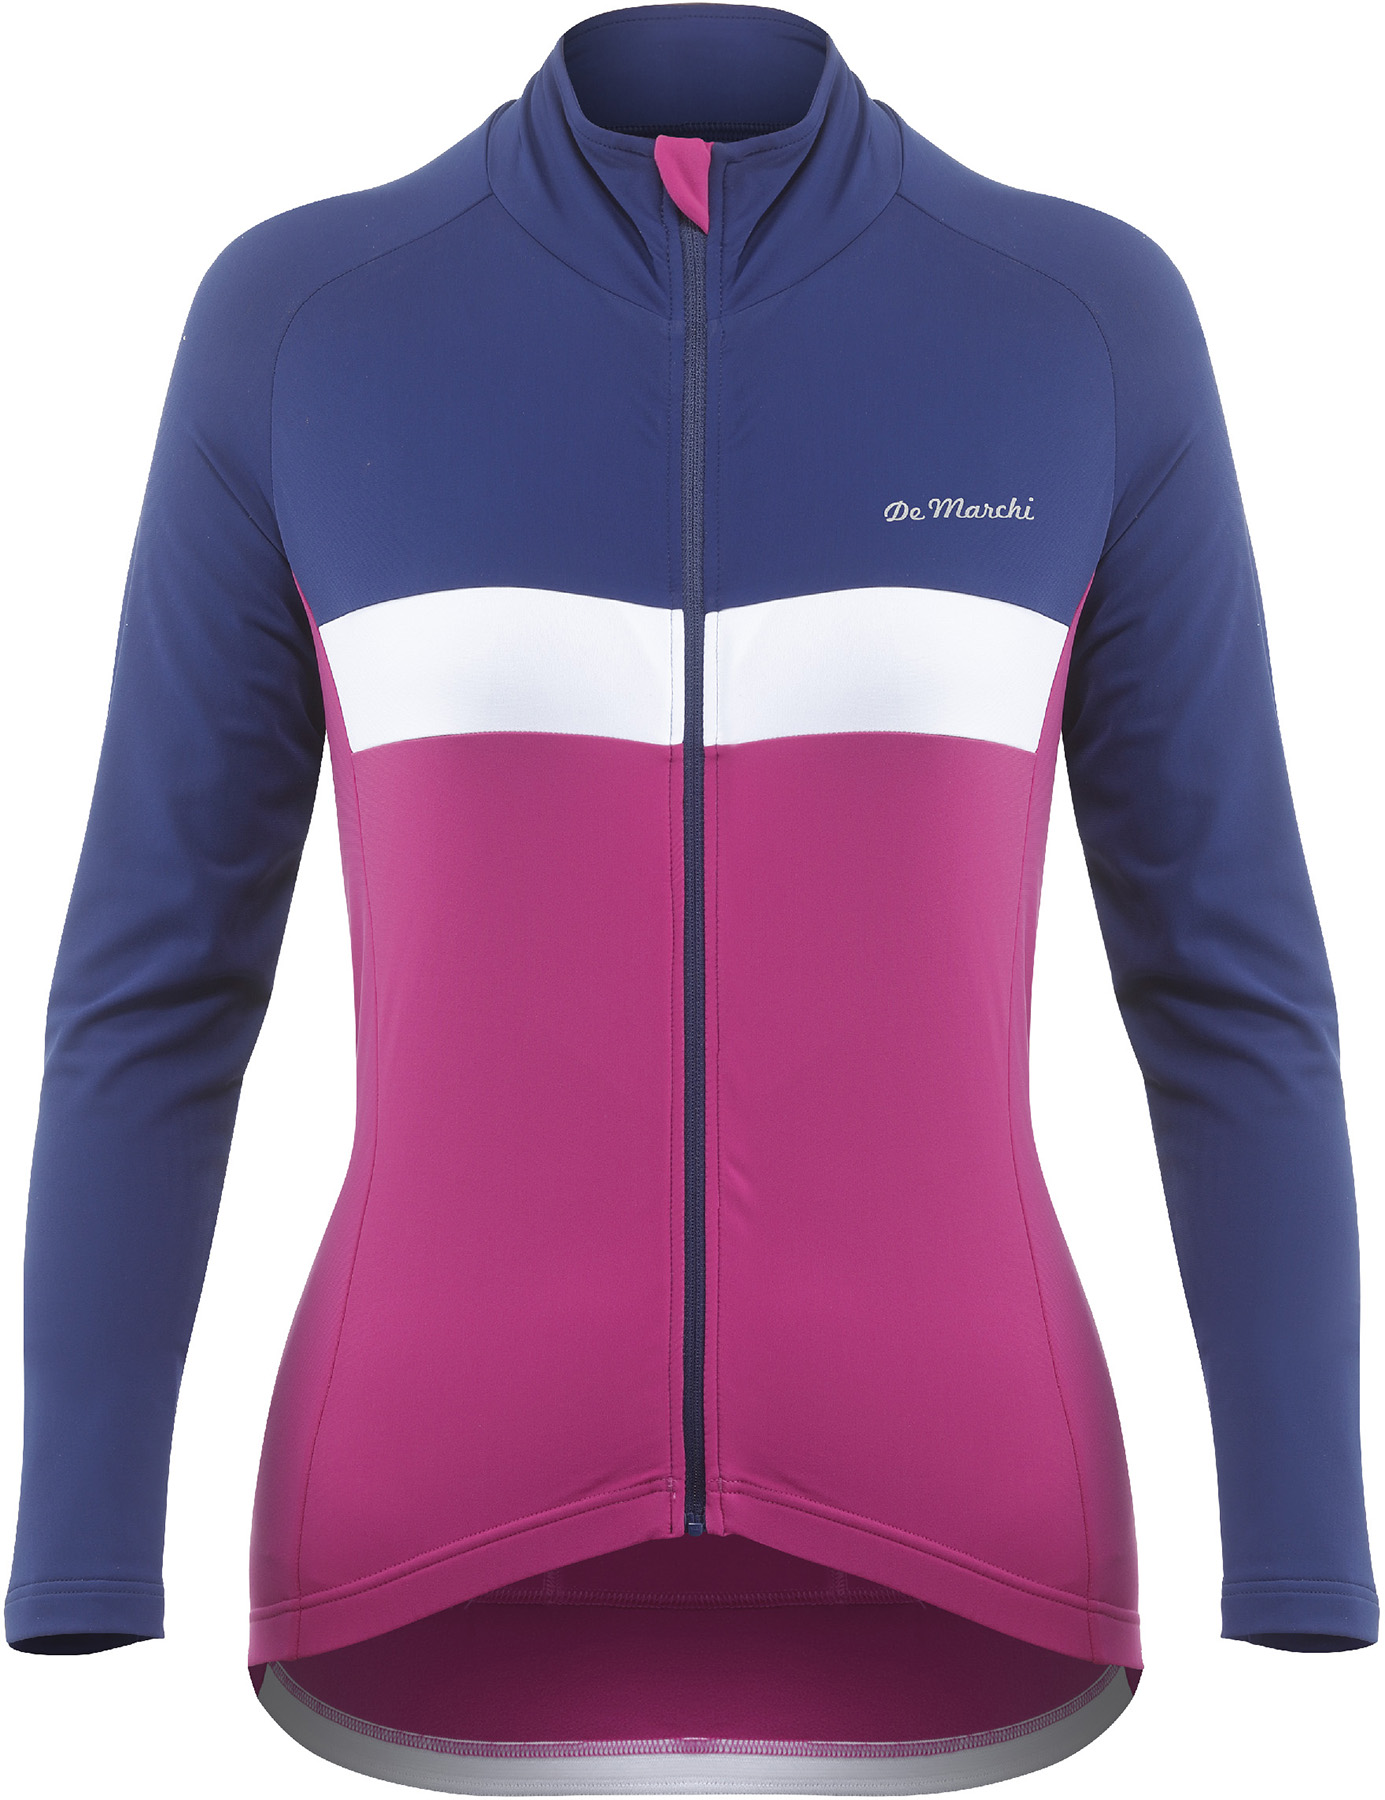 De Marchi Women's Monza Roubaix Light Jersey | Jerseys